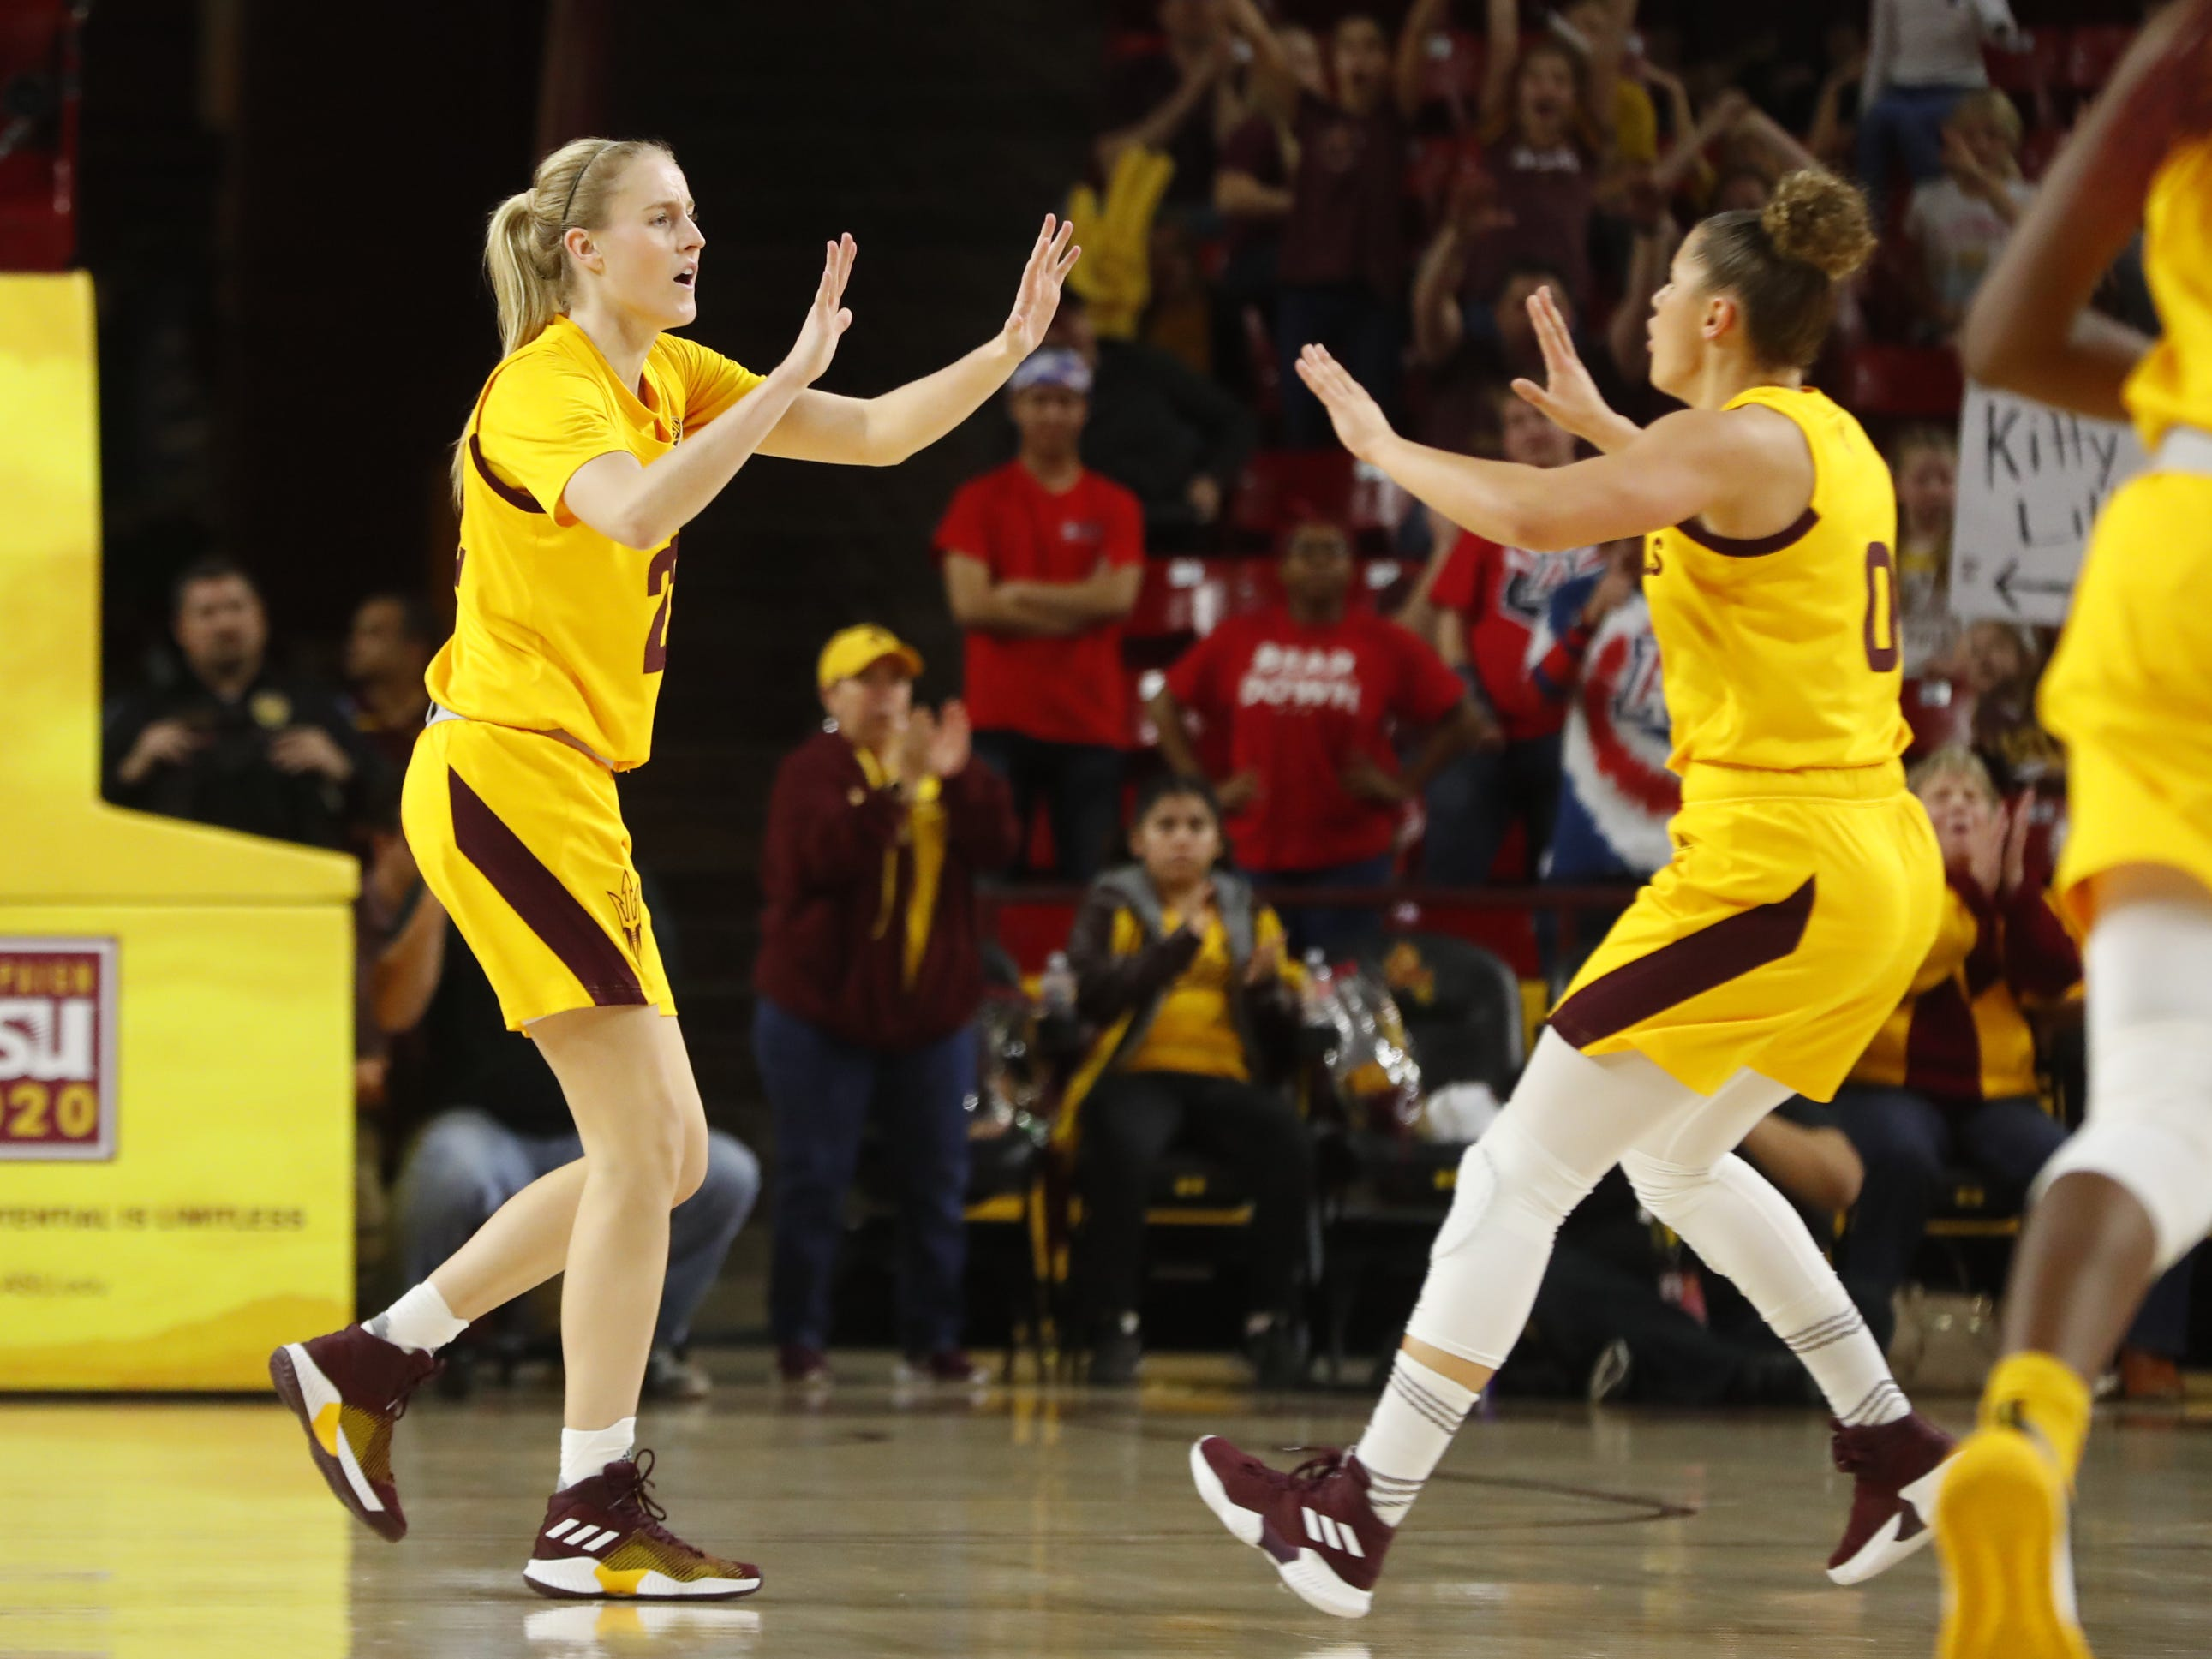 ASU's Courtney Ekmark (22) celebrates with Taya Hanson (0) after scoring against Arizona during the first half at Wells Fargo Arena in Tempe, Ariz. on February 1, 2019.